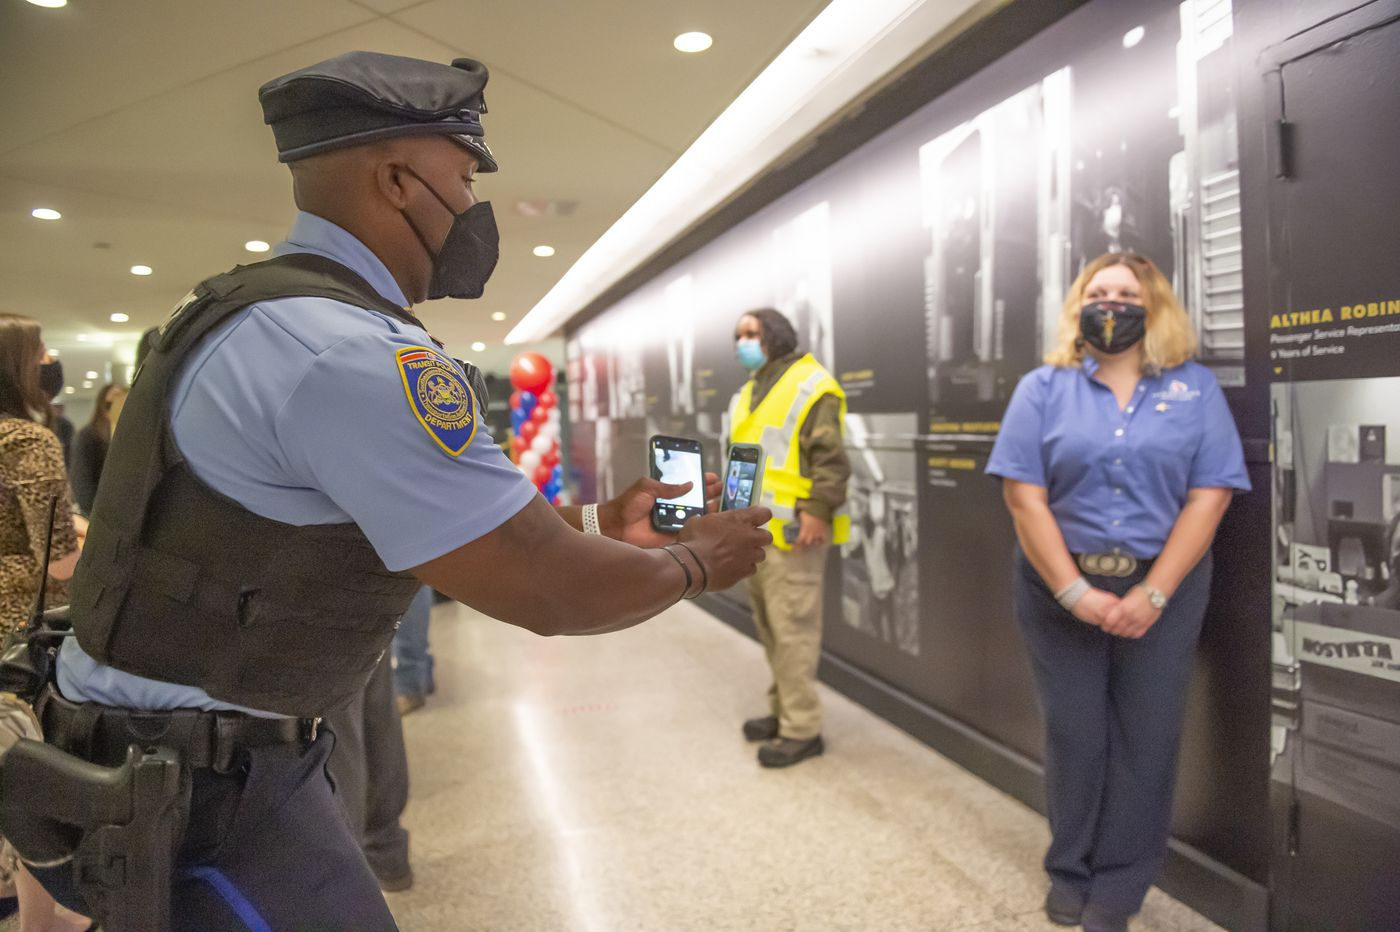 Tribute wall honoring SEPTA frontline workers on display at Suburban Station